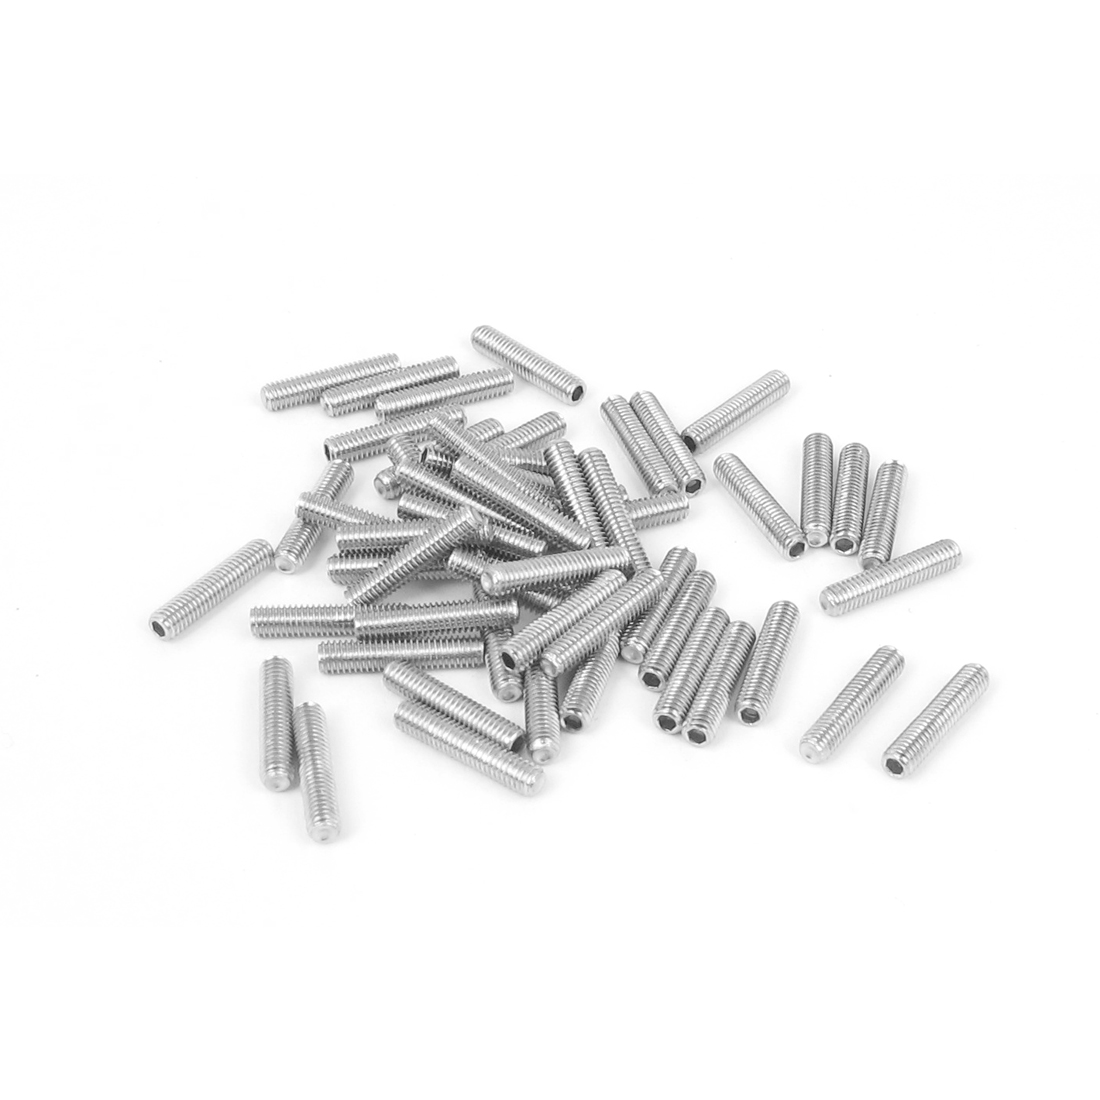 M3x14mm Stainless Steel Hex Socket Set Cap Point Grub Screws Silver Tone 50pcs